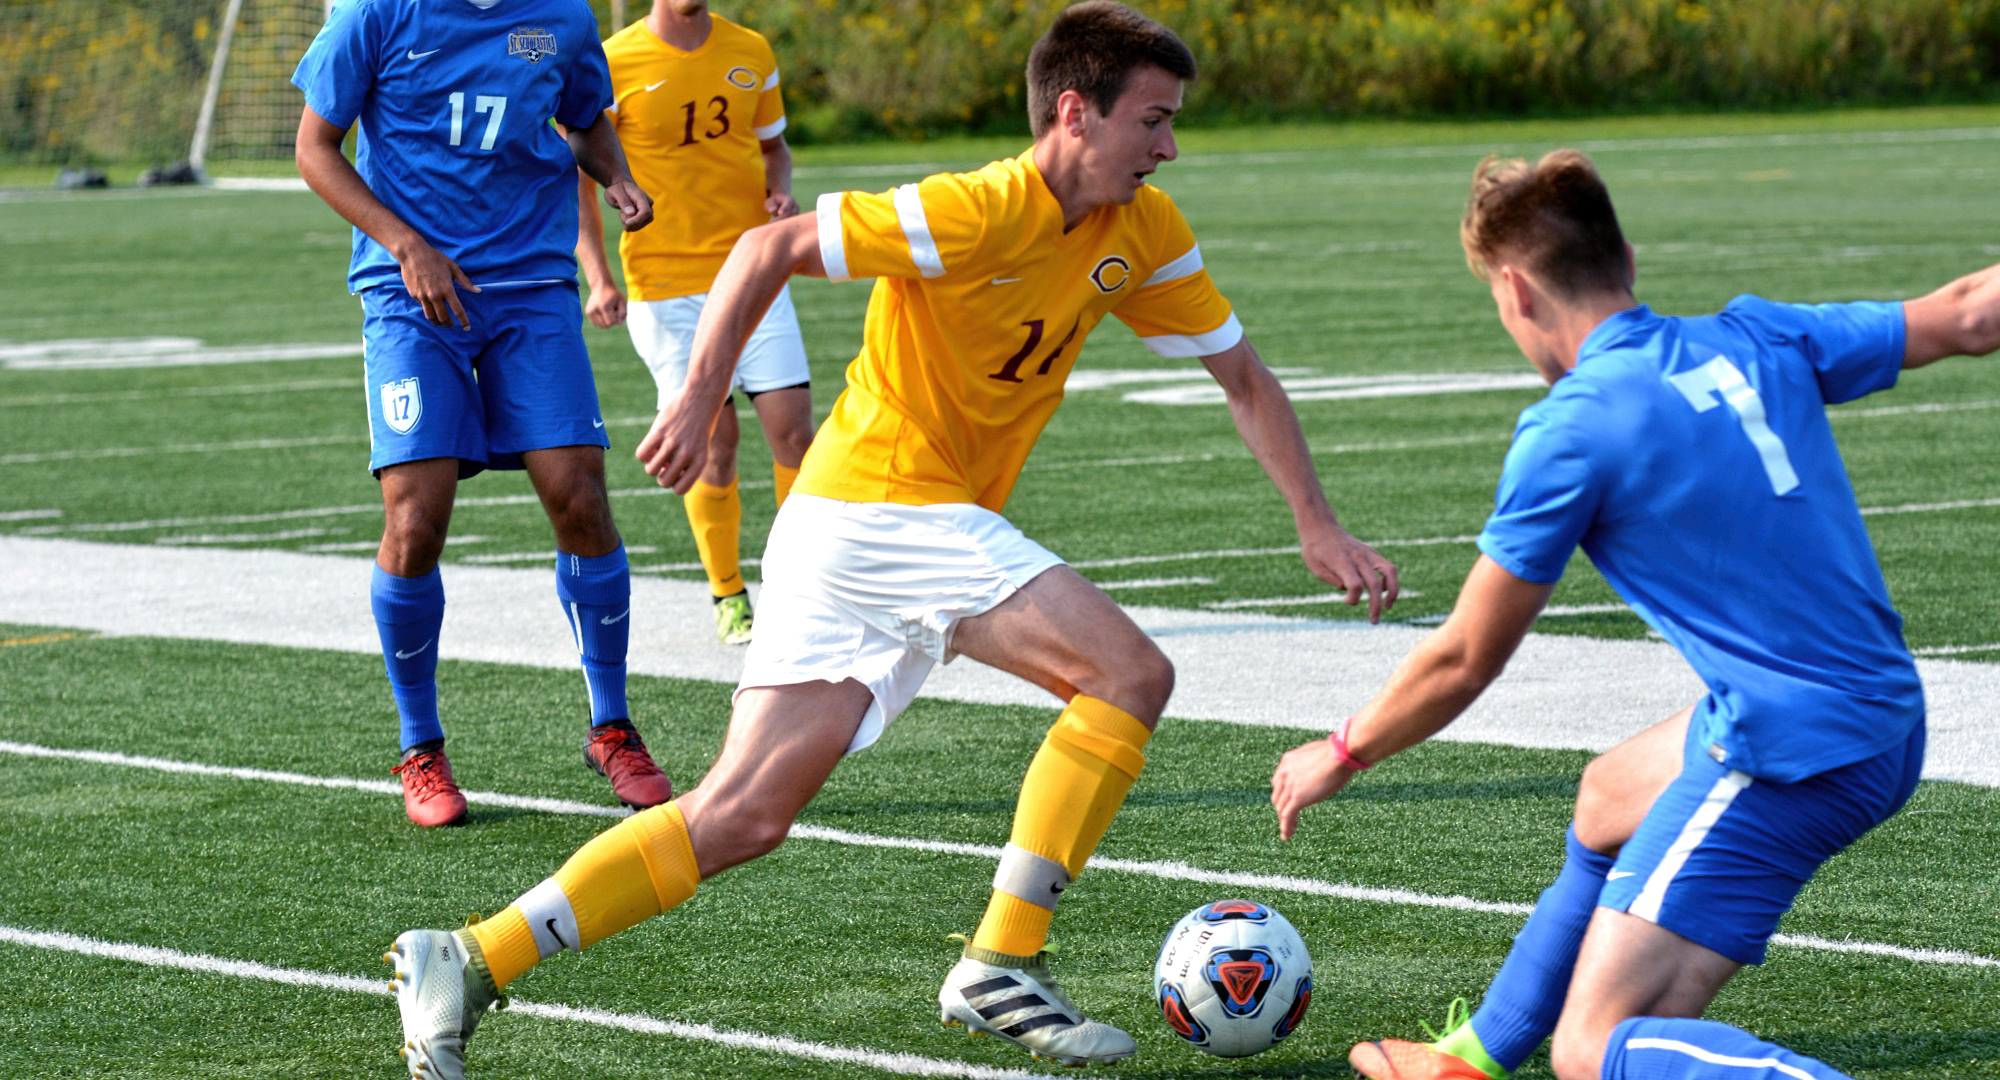 Sophomore Noah Gjesdahl eludes a St. Scholastica during the Cobbers' opening weekend of play. (Photo courtesy of St. Scholastica Sports Info Department)